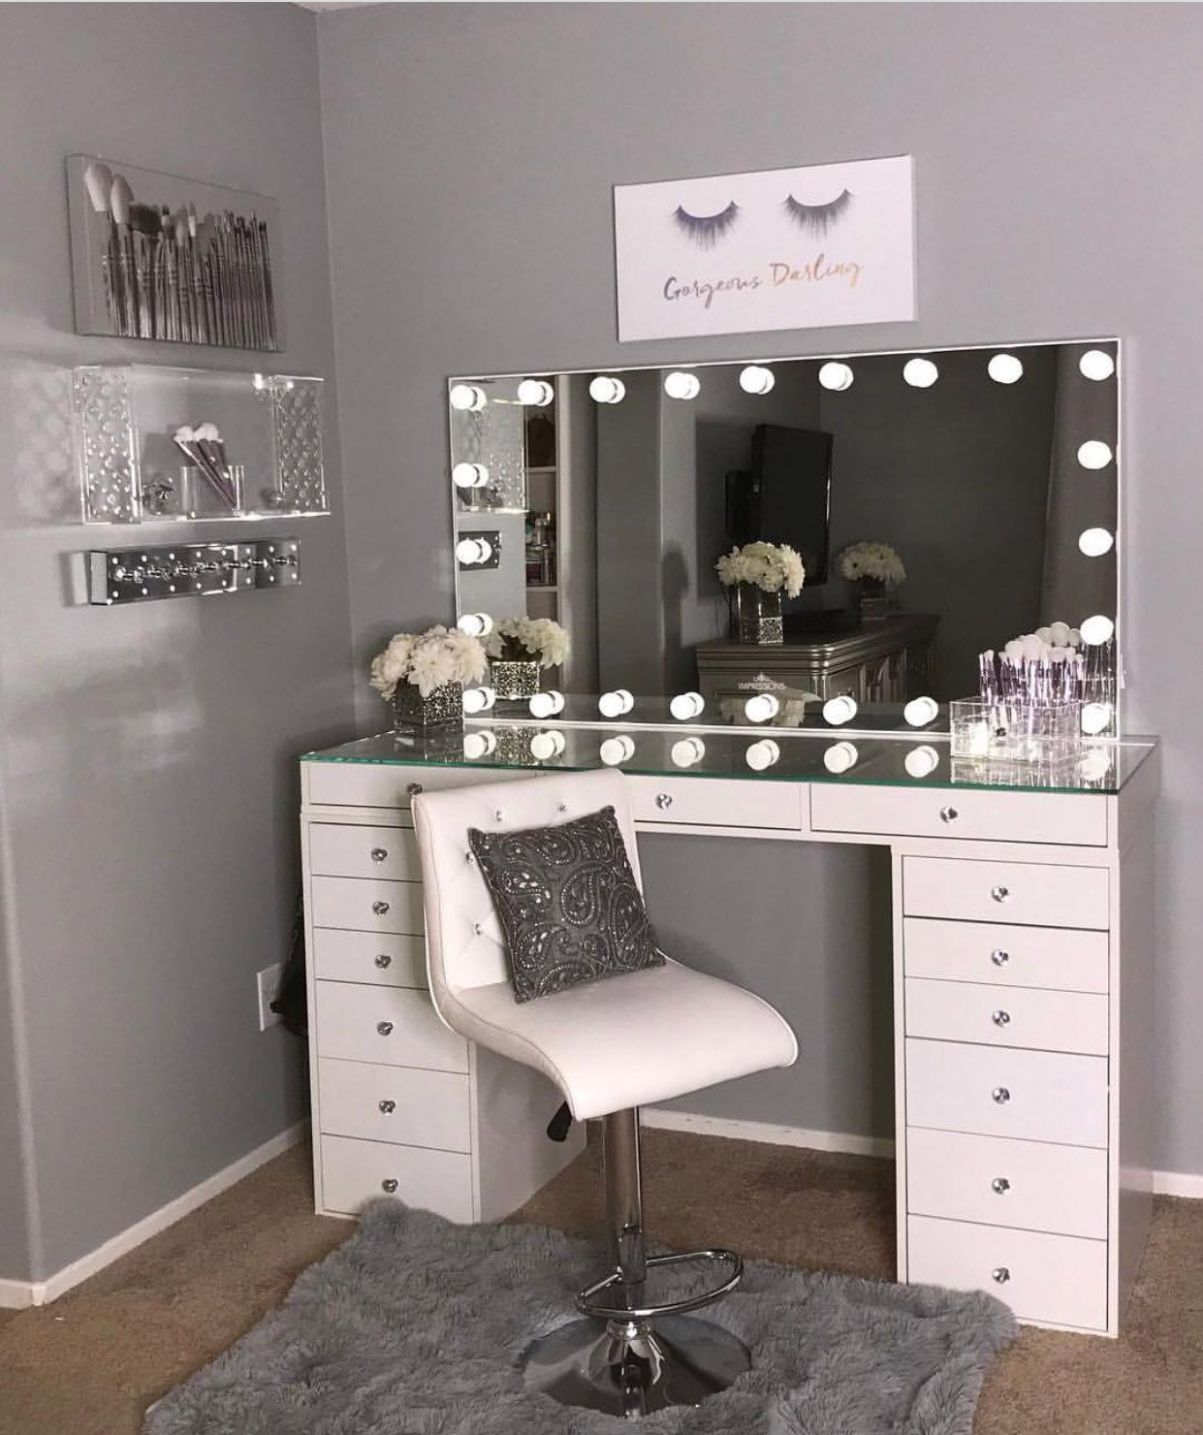 Pin on MAKEUP•ROOM - makeup vanity room ideas